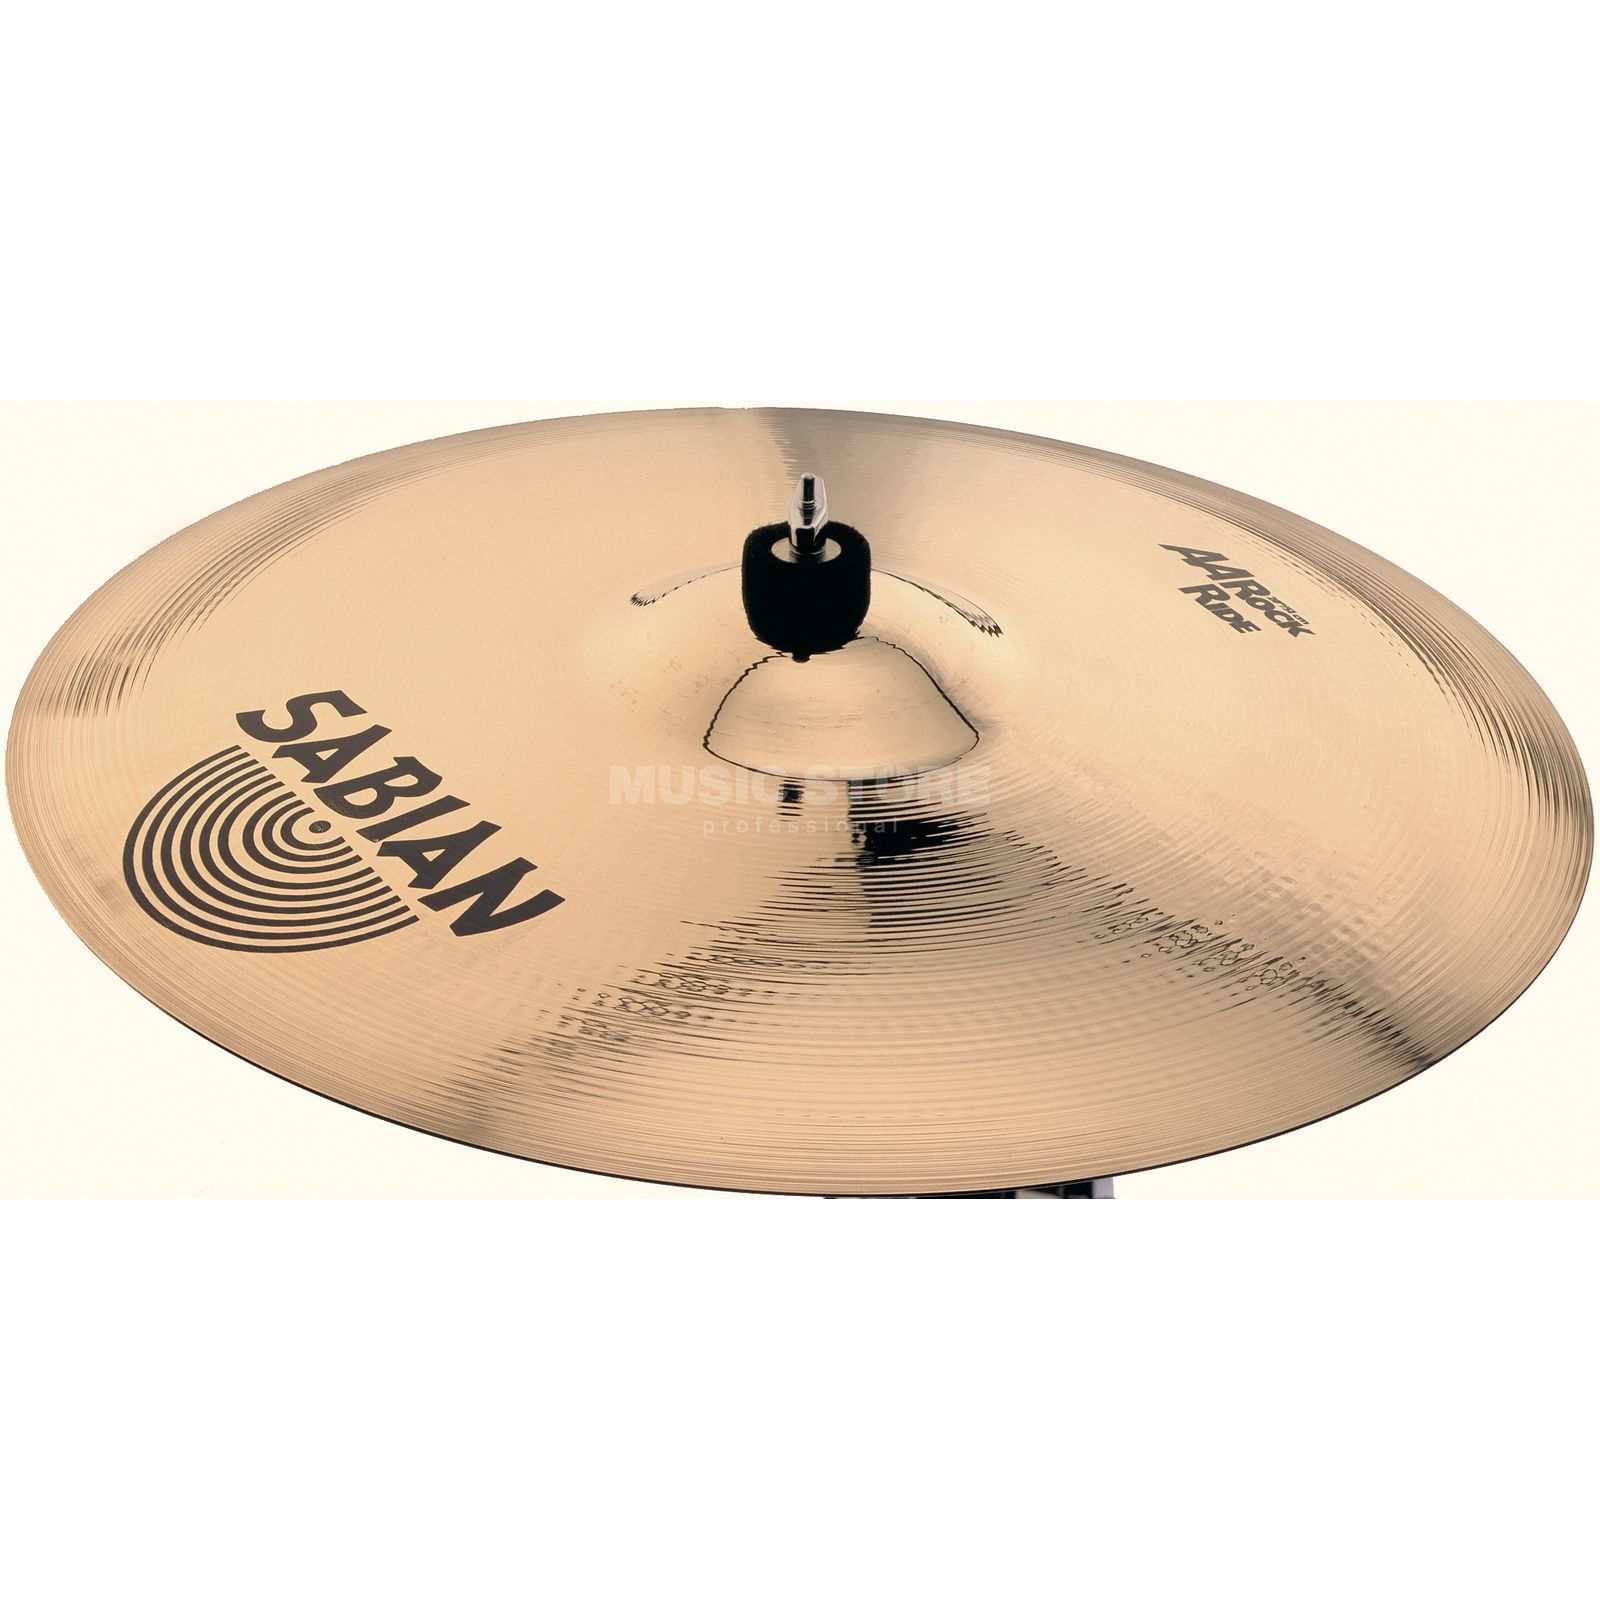 "Sabian AA Rock Ride 21"" Brilliant Finish Immagine prodotto"